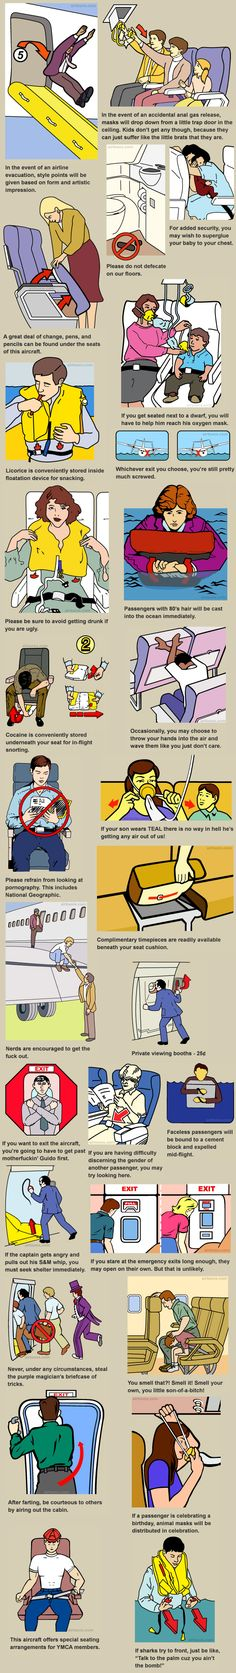 Airline safety instructions explained for the rest of us. Perfect for people who have read those cards hundreds of times. Wtf Funny, Hilarious, Funny Stuff, Airline Humor, Crazy Funny Pictures, Global Tv, 4 Panel Life, Safety Instructions, Planes